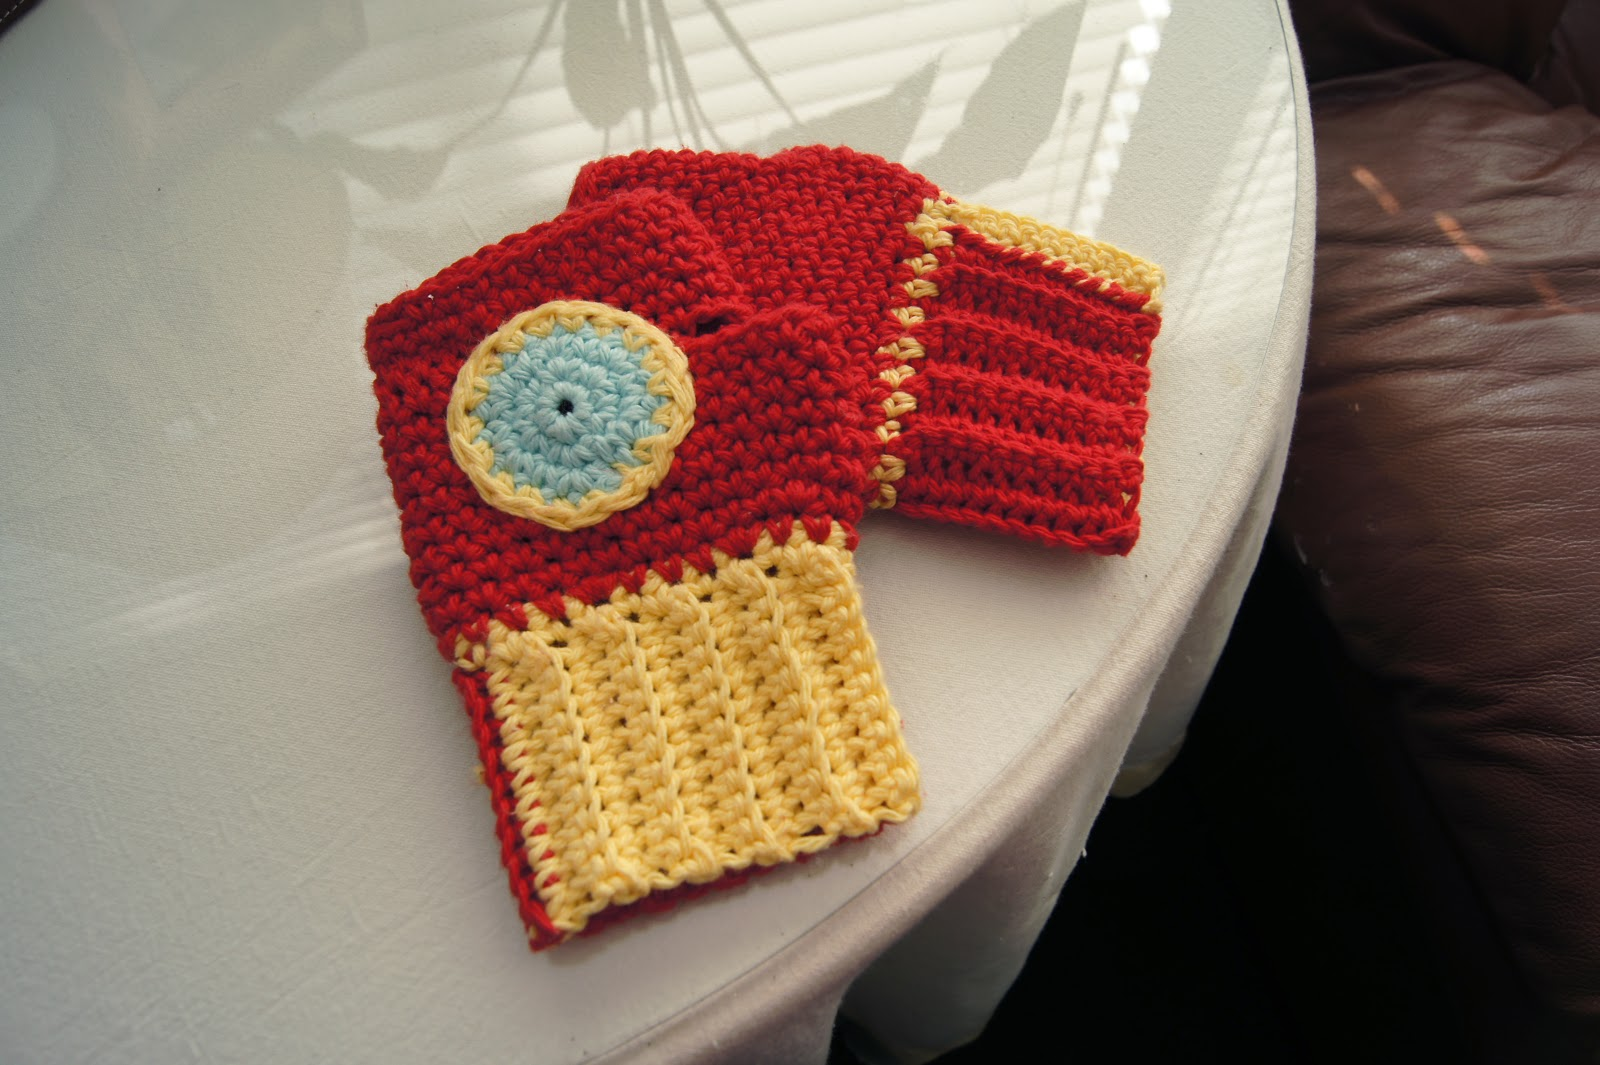 Today's installment of the Superhero Knitting Patterns is Iron Man Patterns. I decided to do knitting and crochet ones for this set. Iron Man Fingerless Gloves – Crochet.